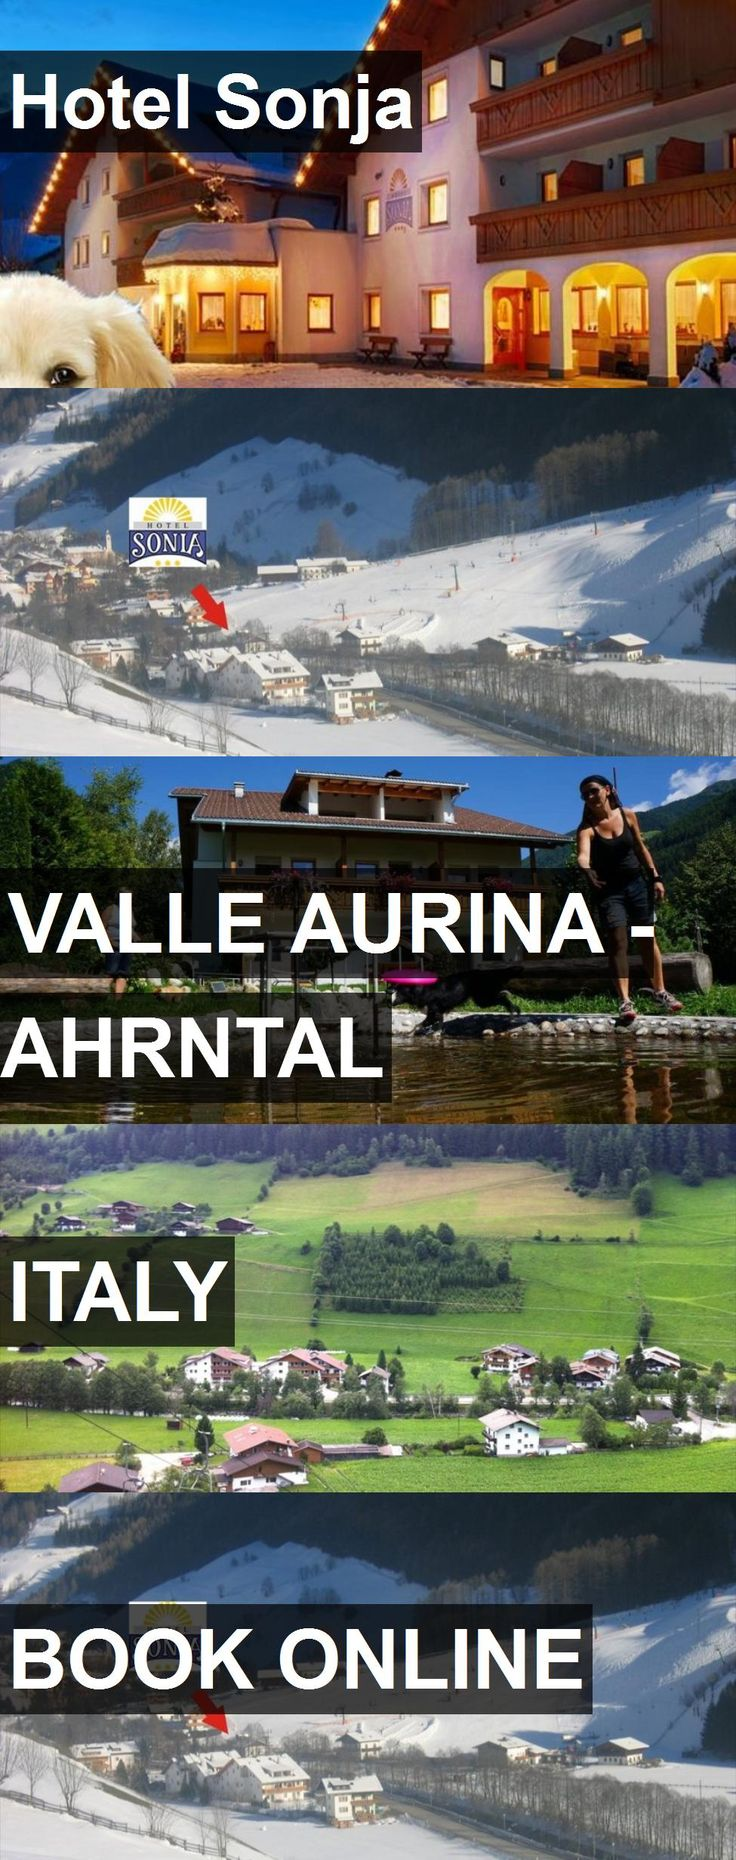 Hotel Sonja in Valle Aurina - Ahrntal, Italy. For more information, photos, reviews and best prices please follow the link. #Italy #ValleAurina-Ahrntal #travel #vacation #hotel